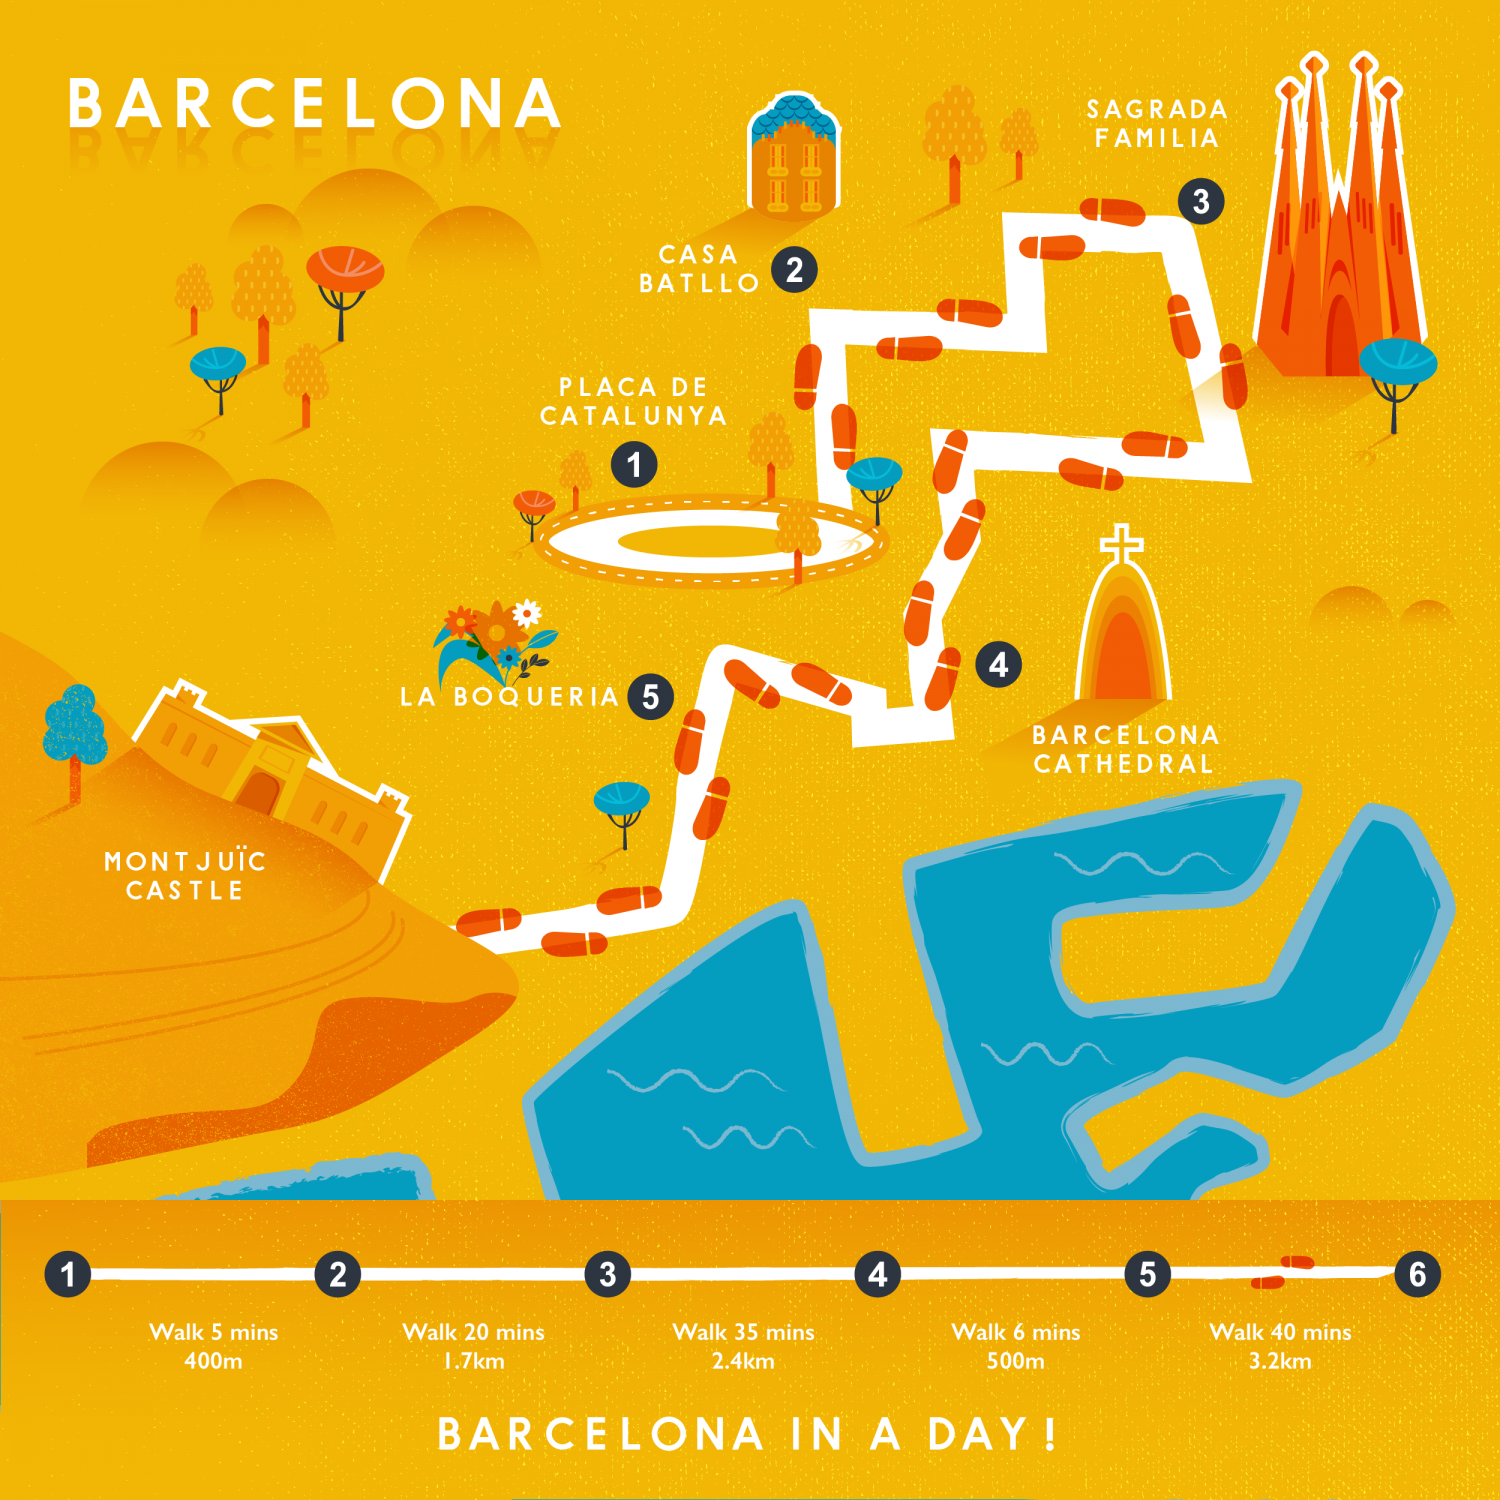 Walking tour of Barcelona in 1 day